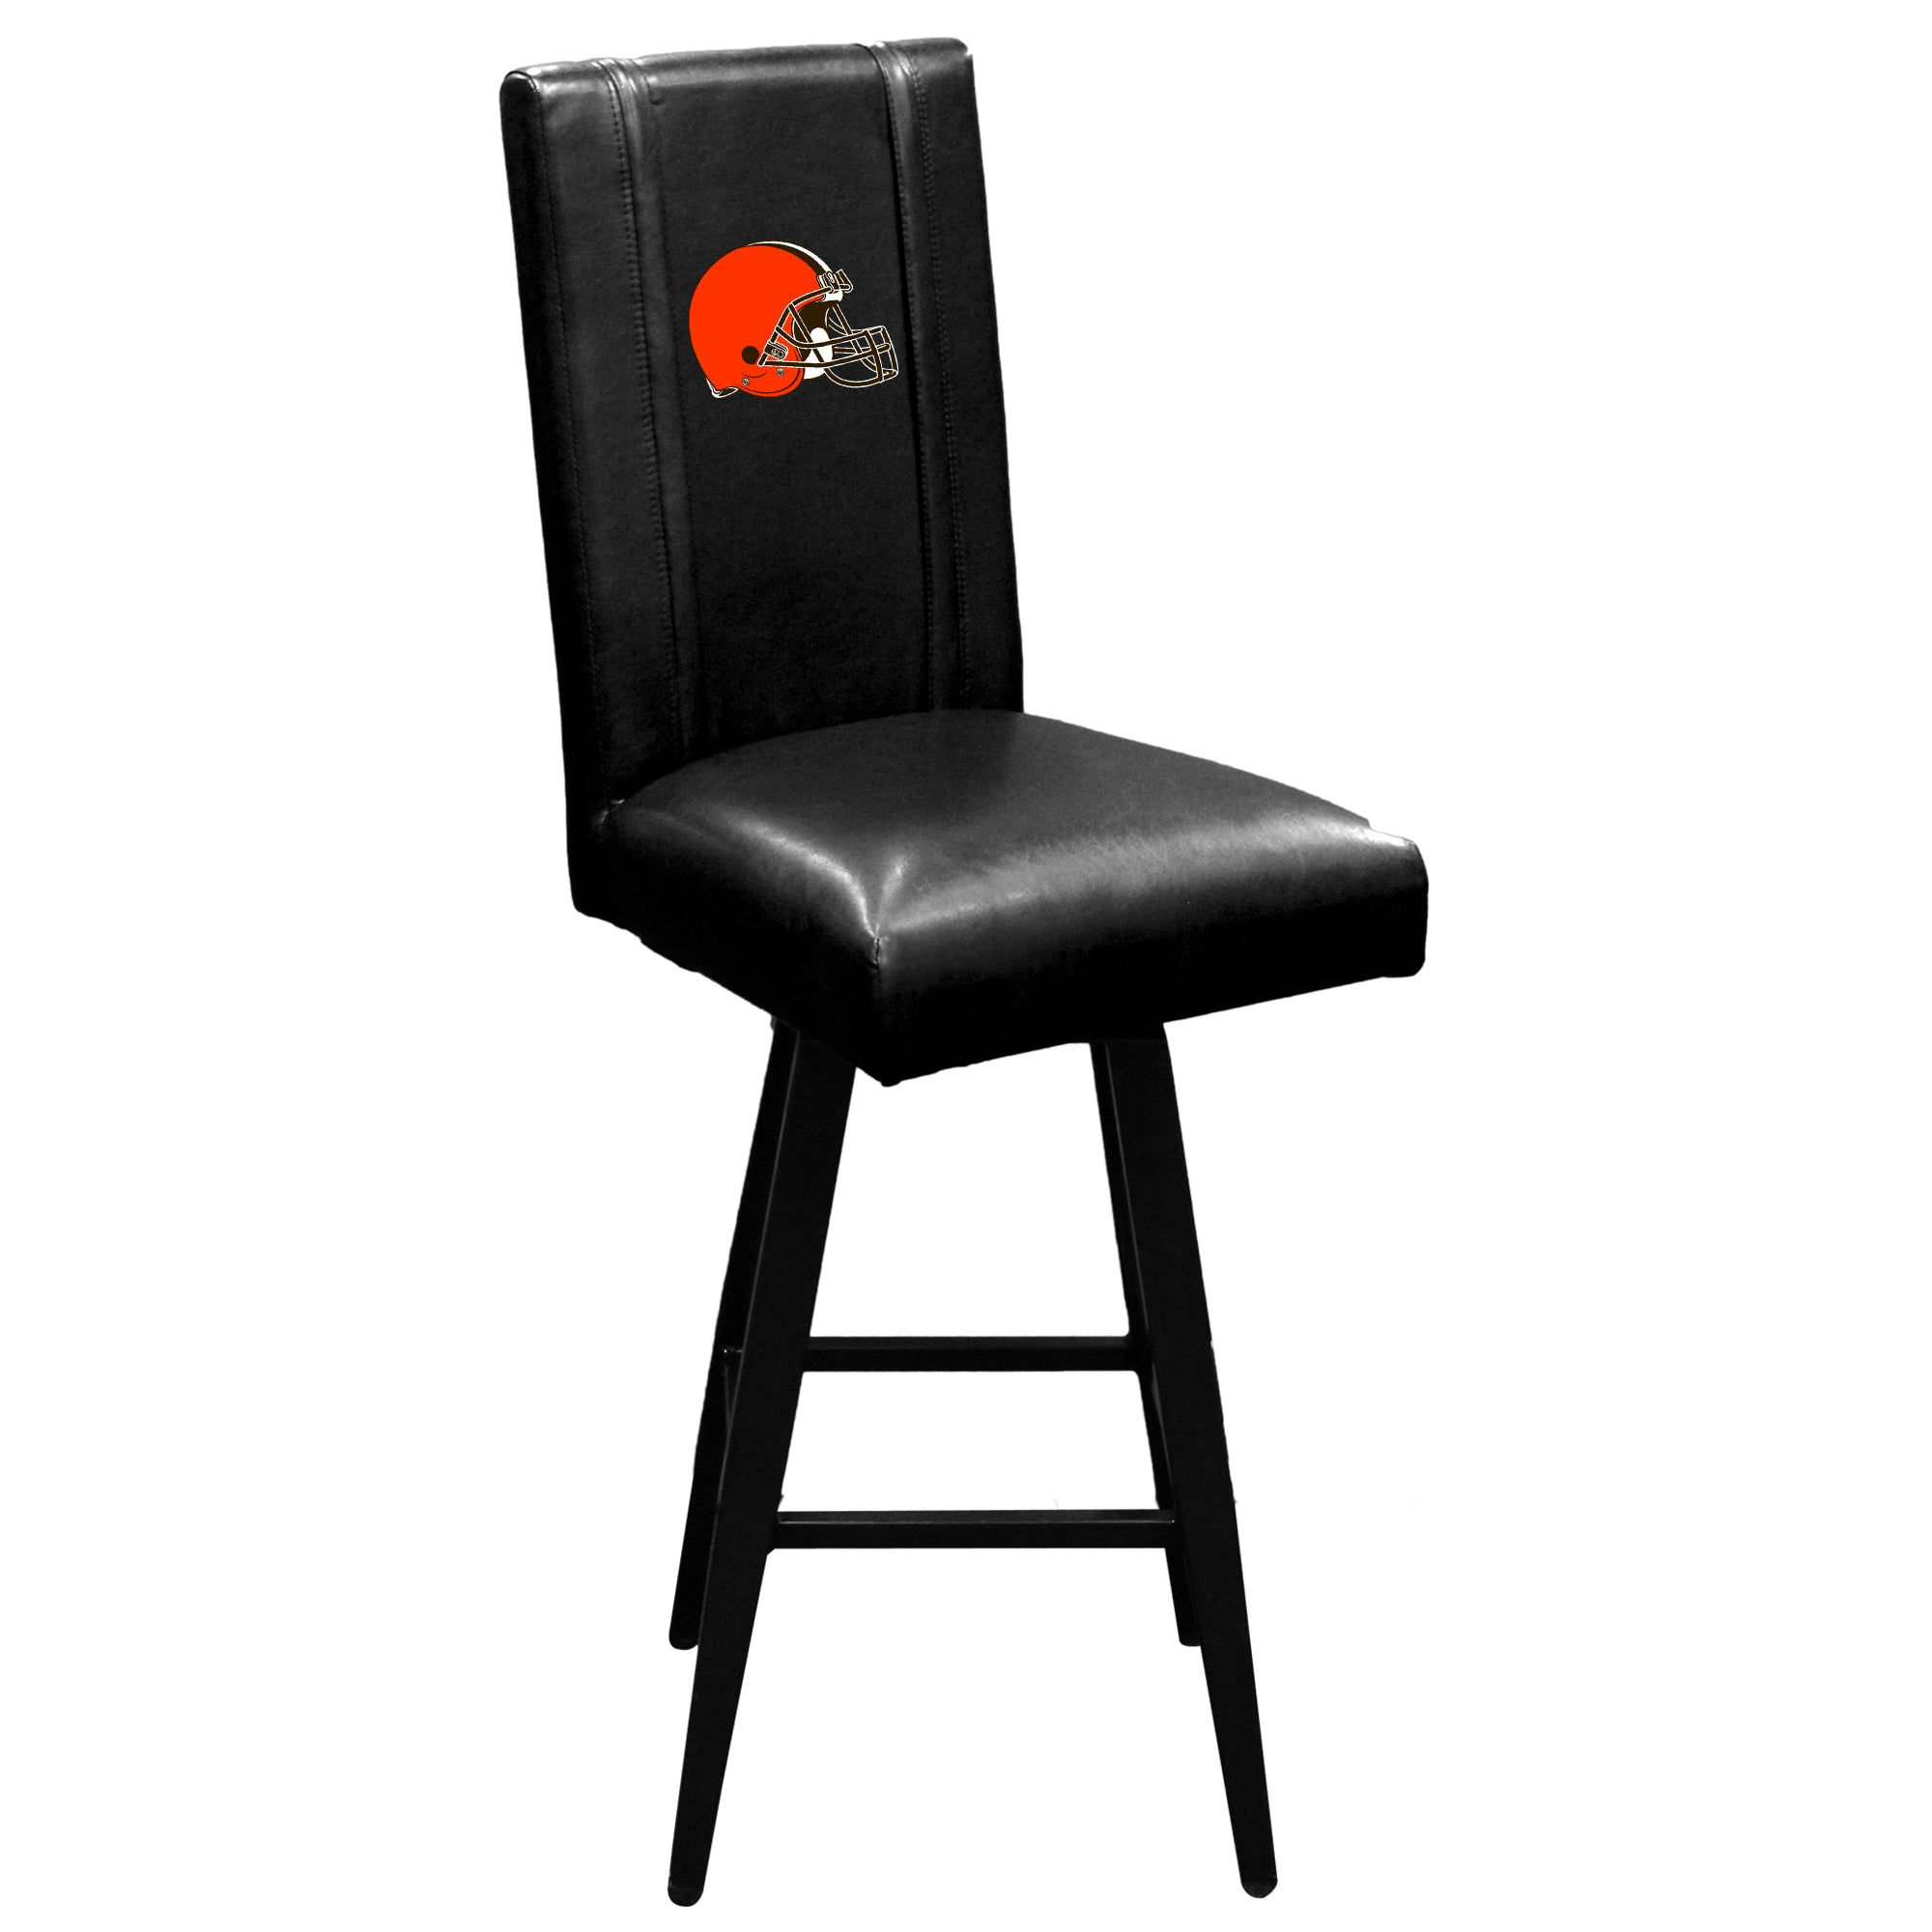 Swivel Bar Stool 2000 with  Cleveland Browns Primary Logo